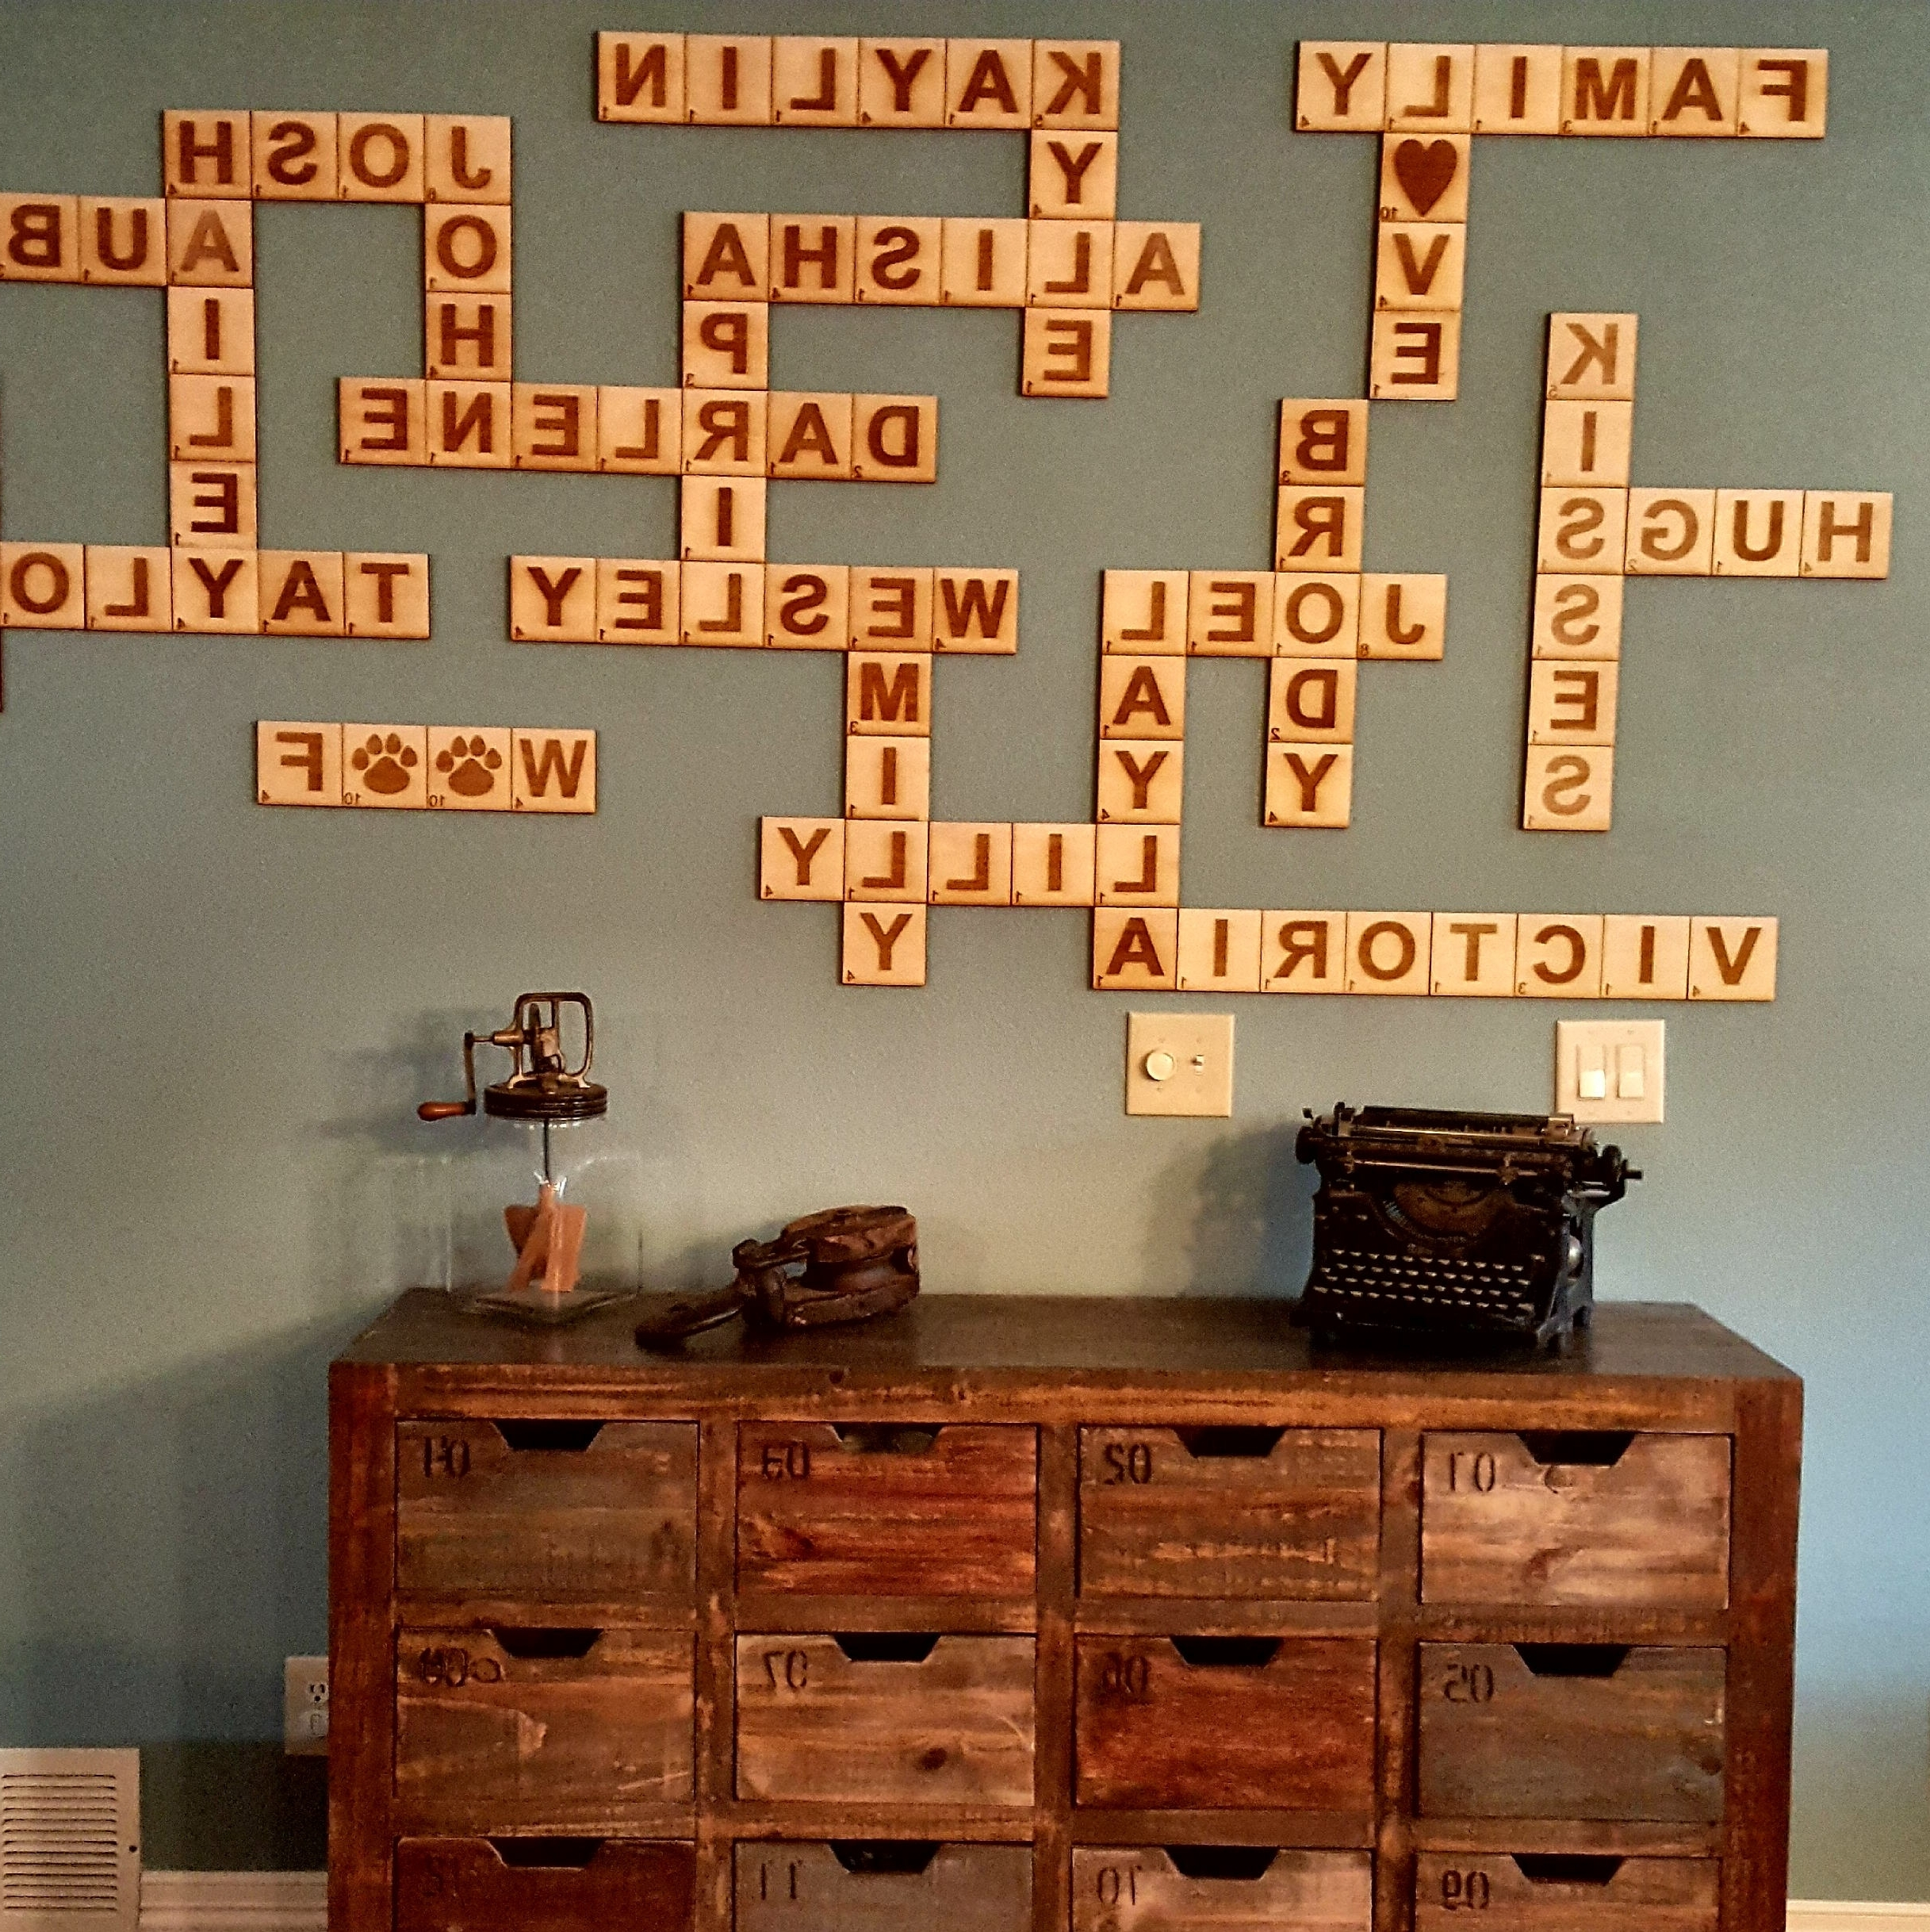 Widely Used Scrabble Wall Art Within Scrabble Wall Tiles, Scrabble Letters, Scrabble Tiles, Scrabble Wall (View 20 of 20)